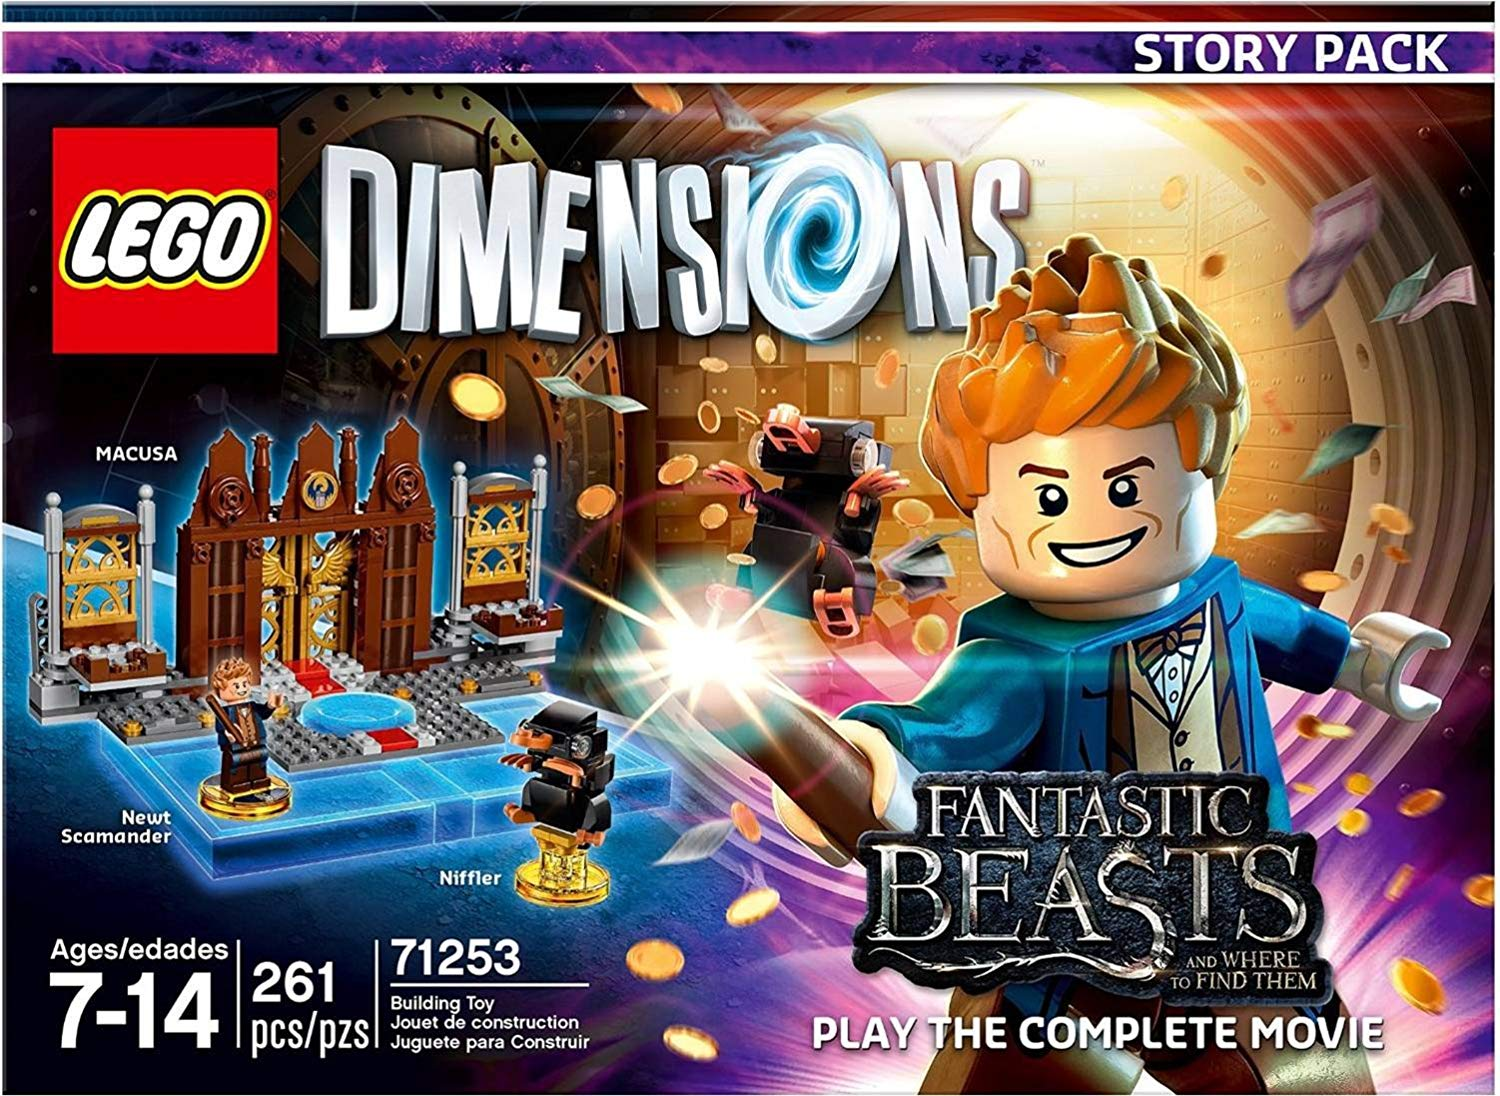 Lego Dimensions Fantastic Beasts and Where to Find Them Story Pack (71253)